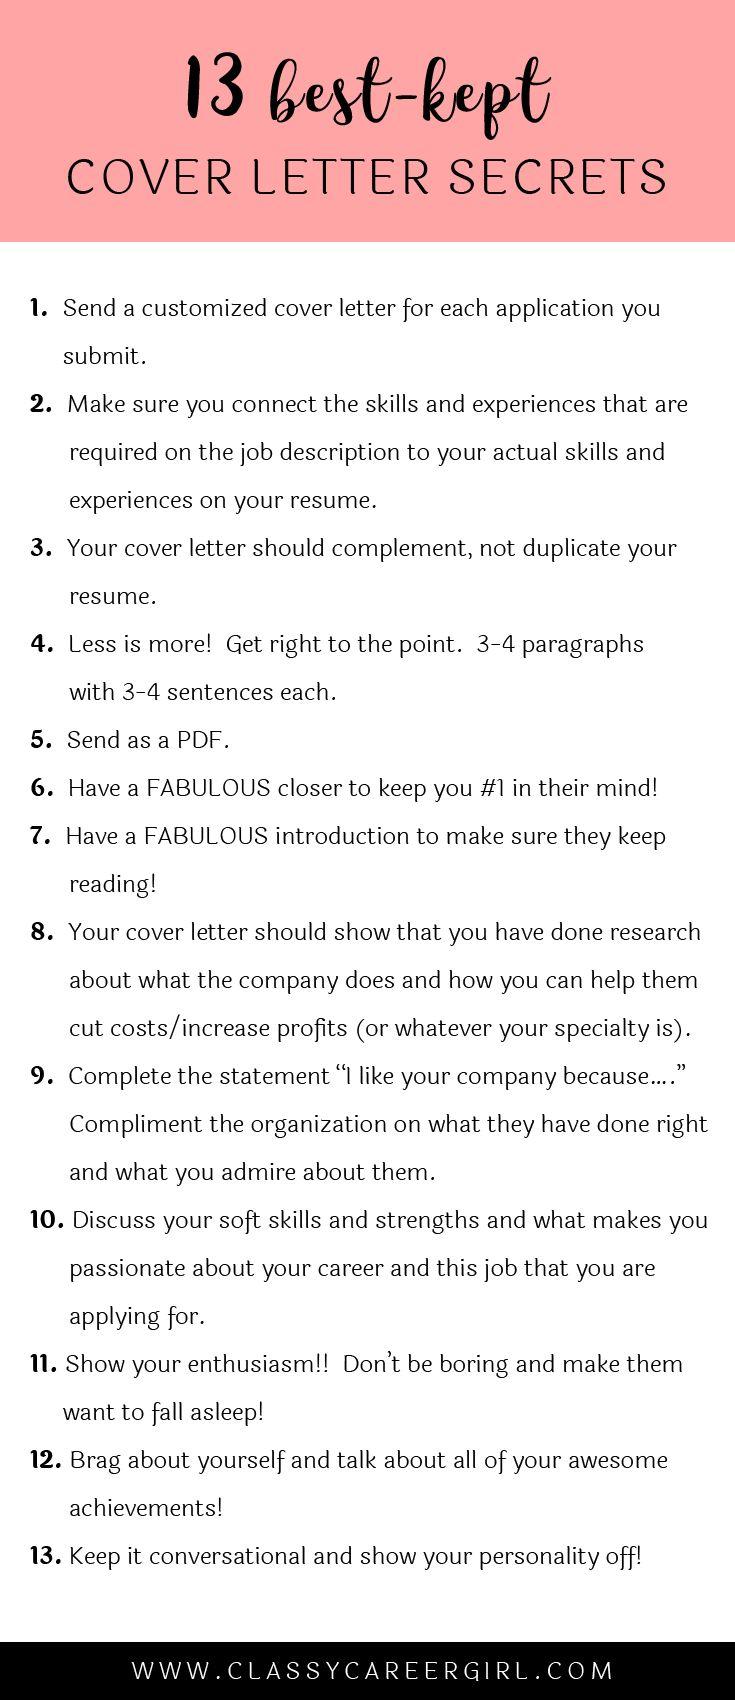 the 13 best kept cover letter secrets tips on writing cover letter